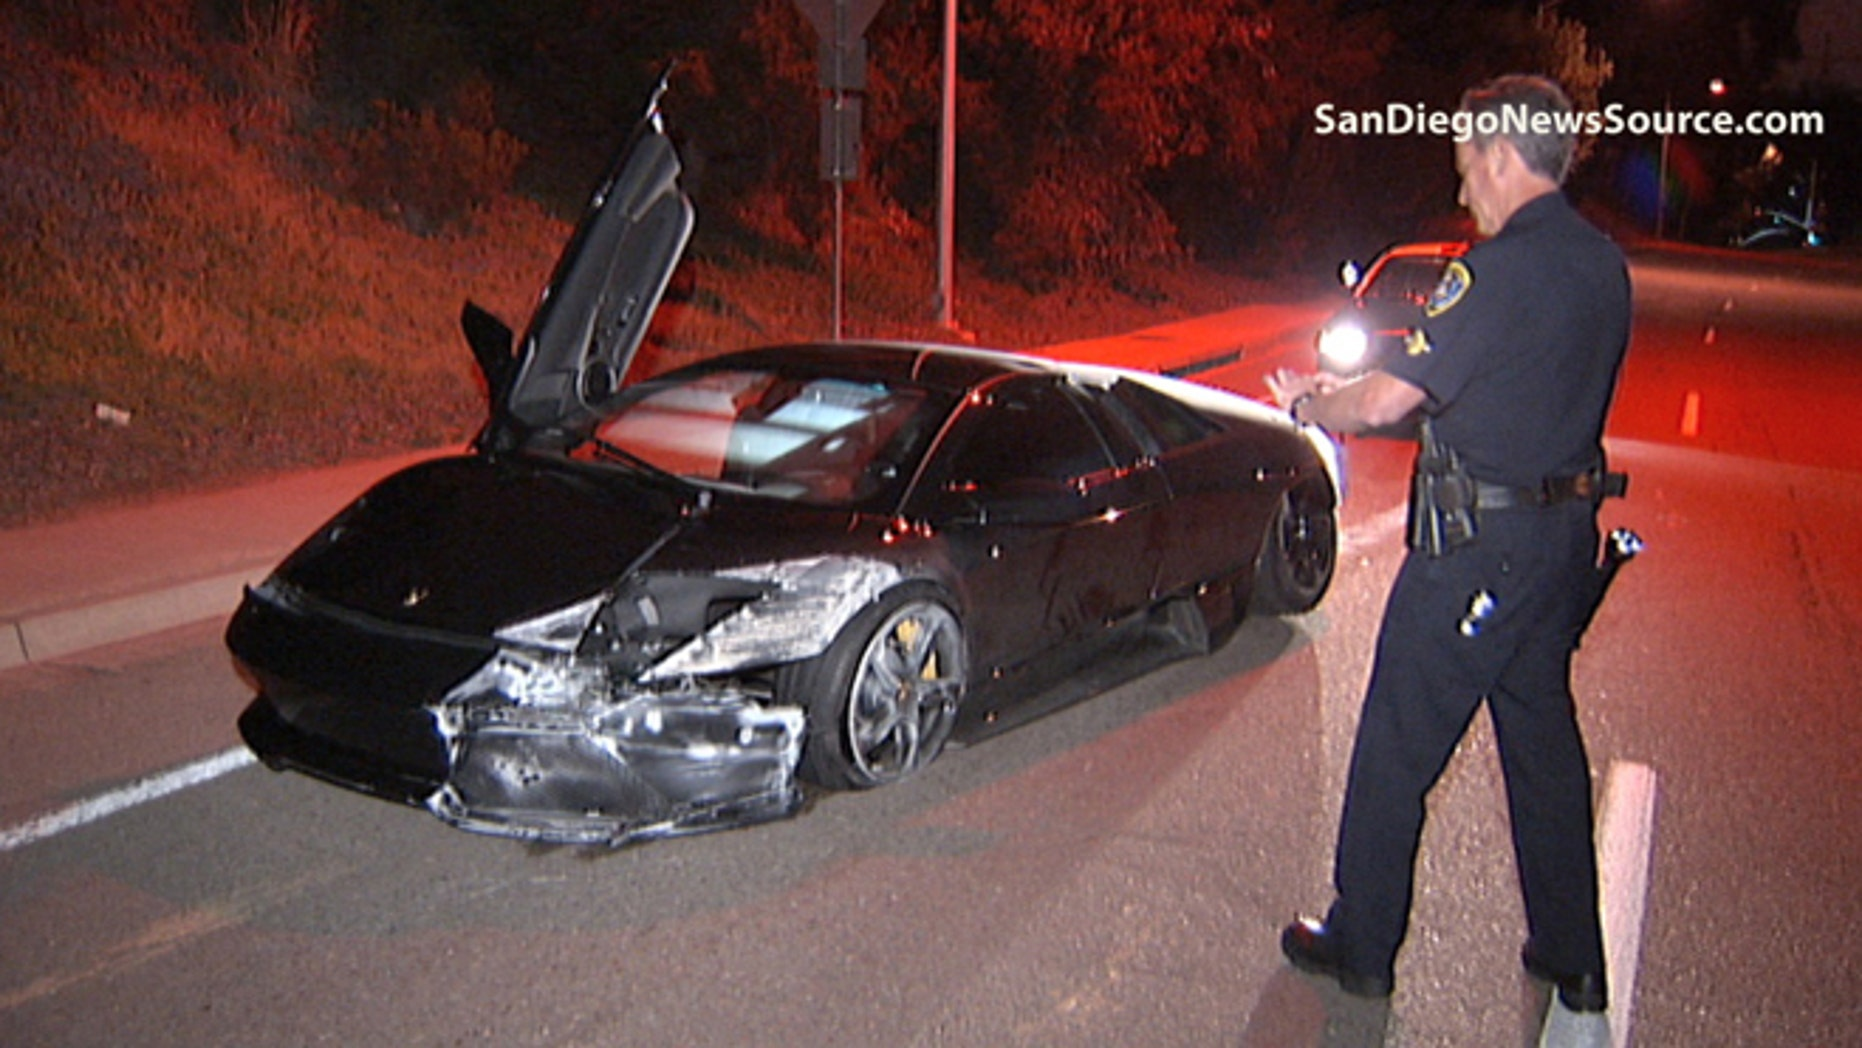 Police inspect the damage to a banged up 2008 Lamborghini on the side of La Jolla Village Drive.